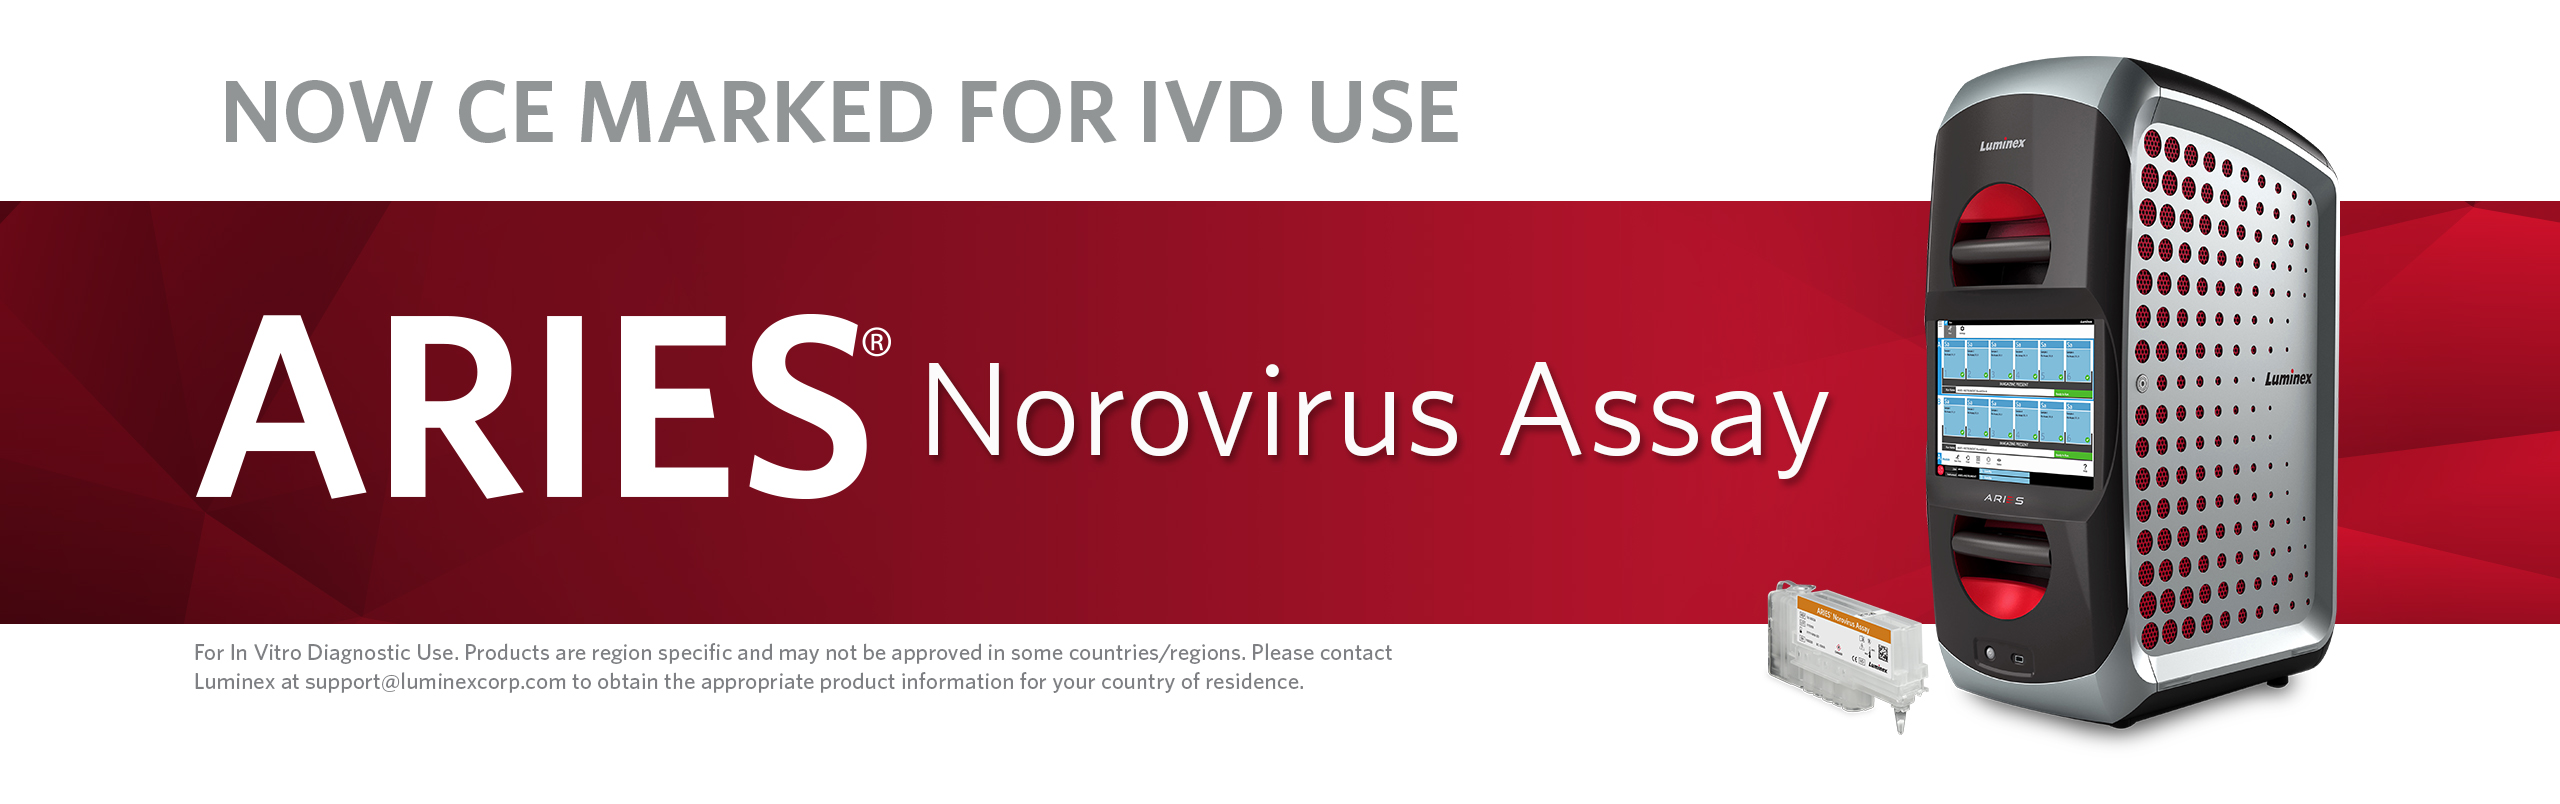 ARIES® Norovirus Assay is CE Marked for IVD Use